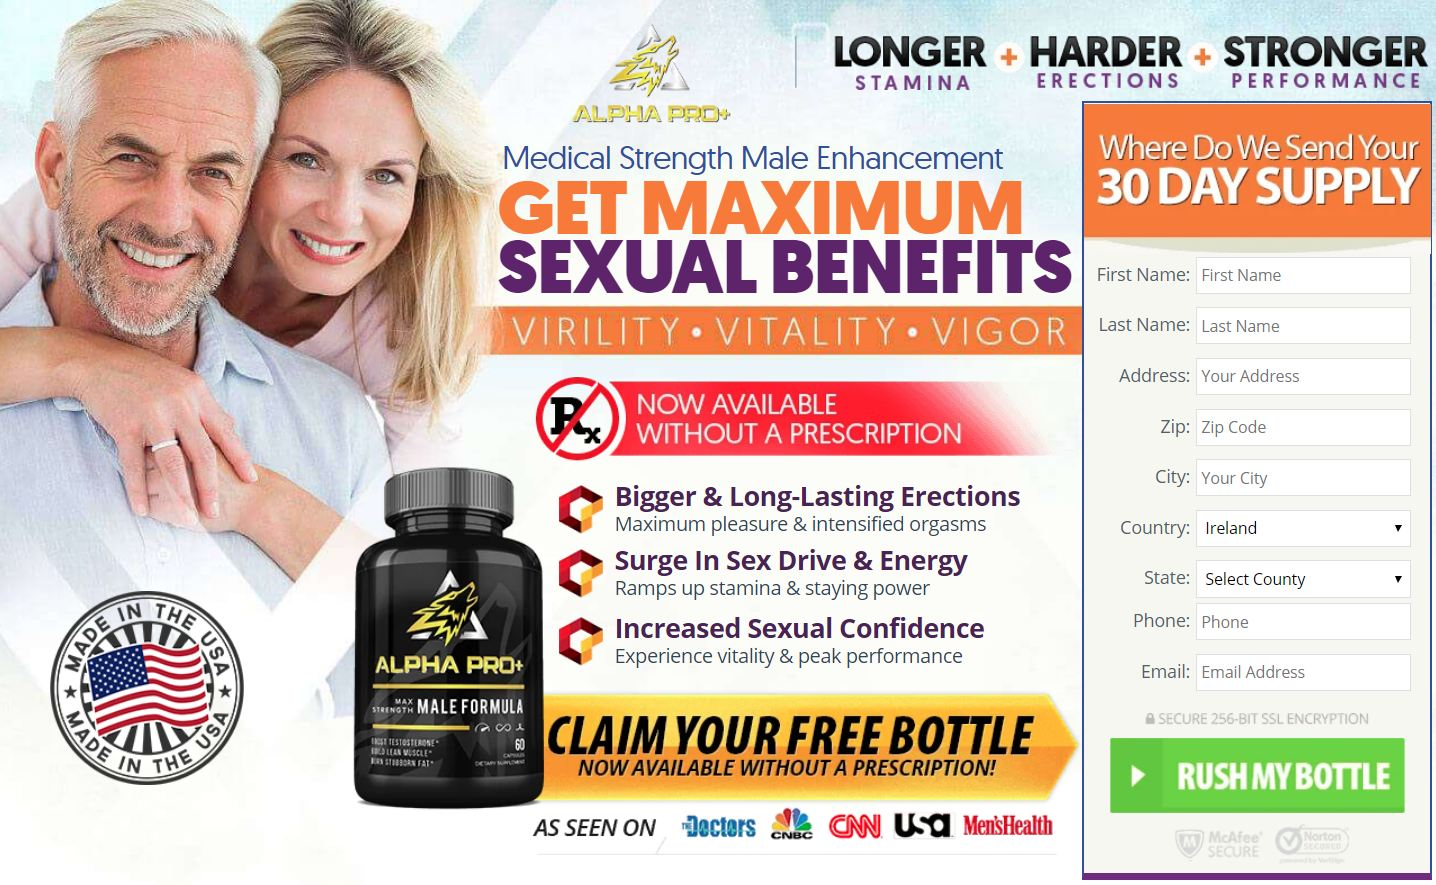 Alpha Pro Plus Male Enhancement Reviews